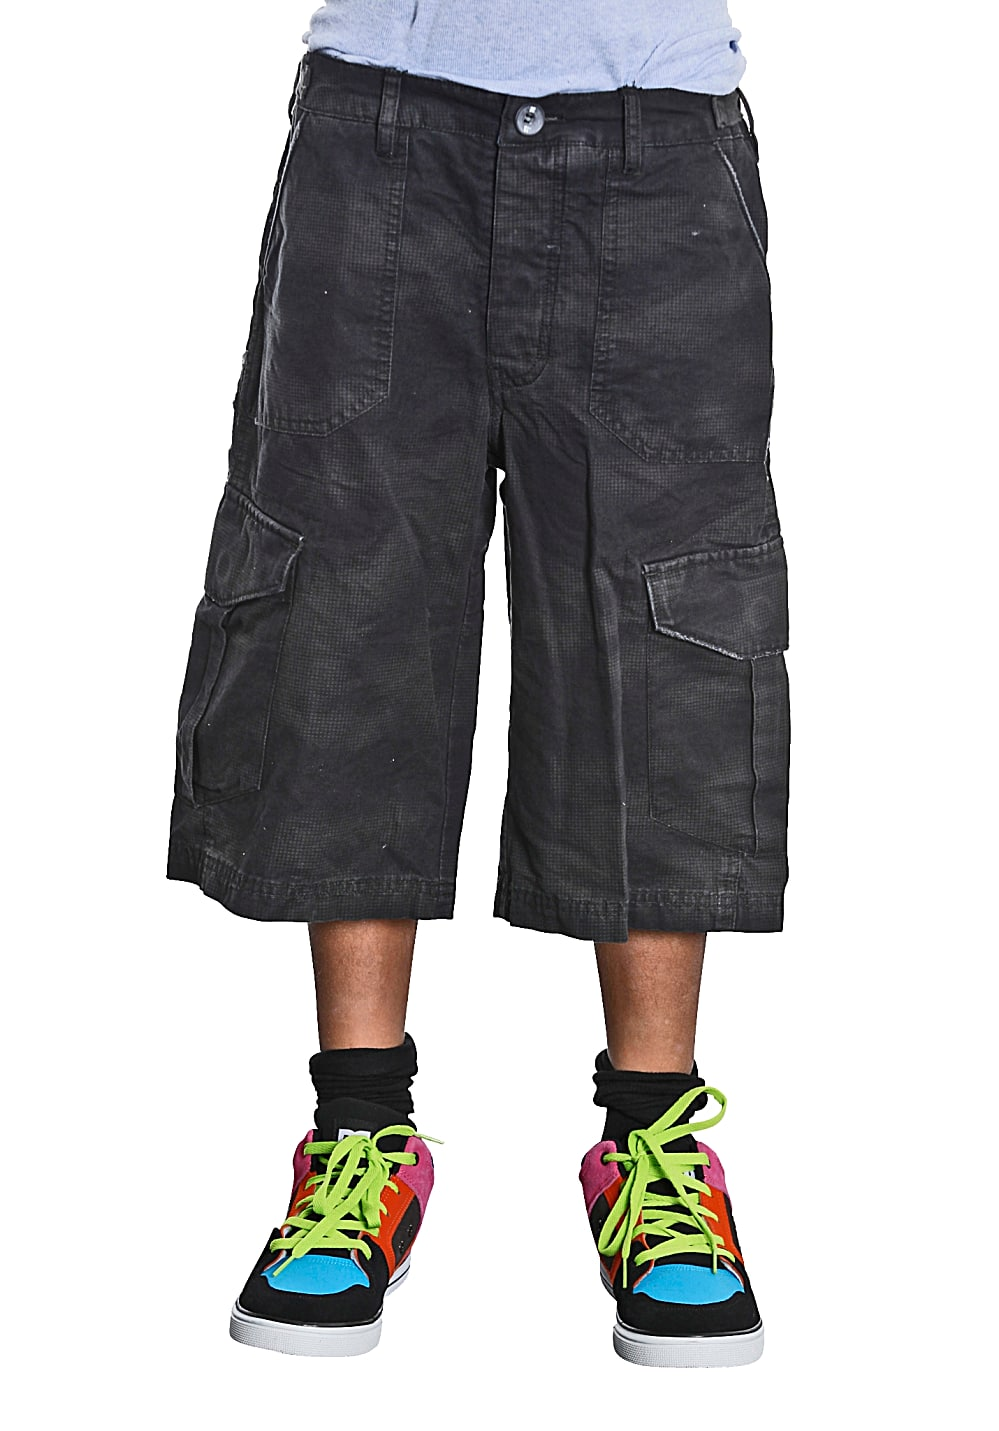 Boyshosen - DC Boys Howitzer Shorts Schwarz - Onlineshop Planet Sports